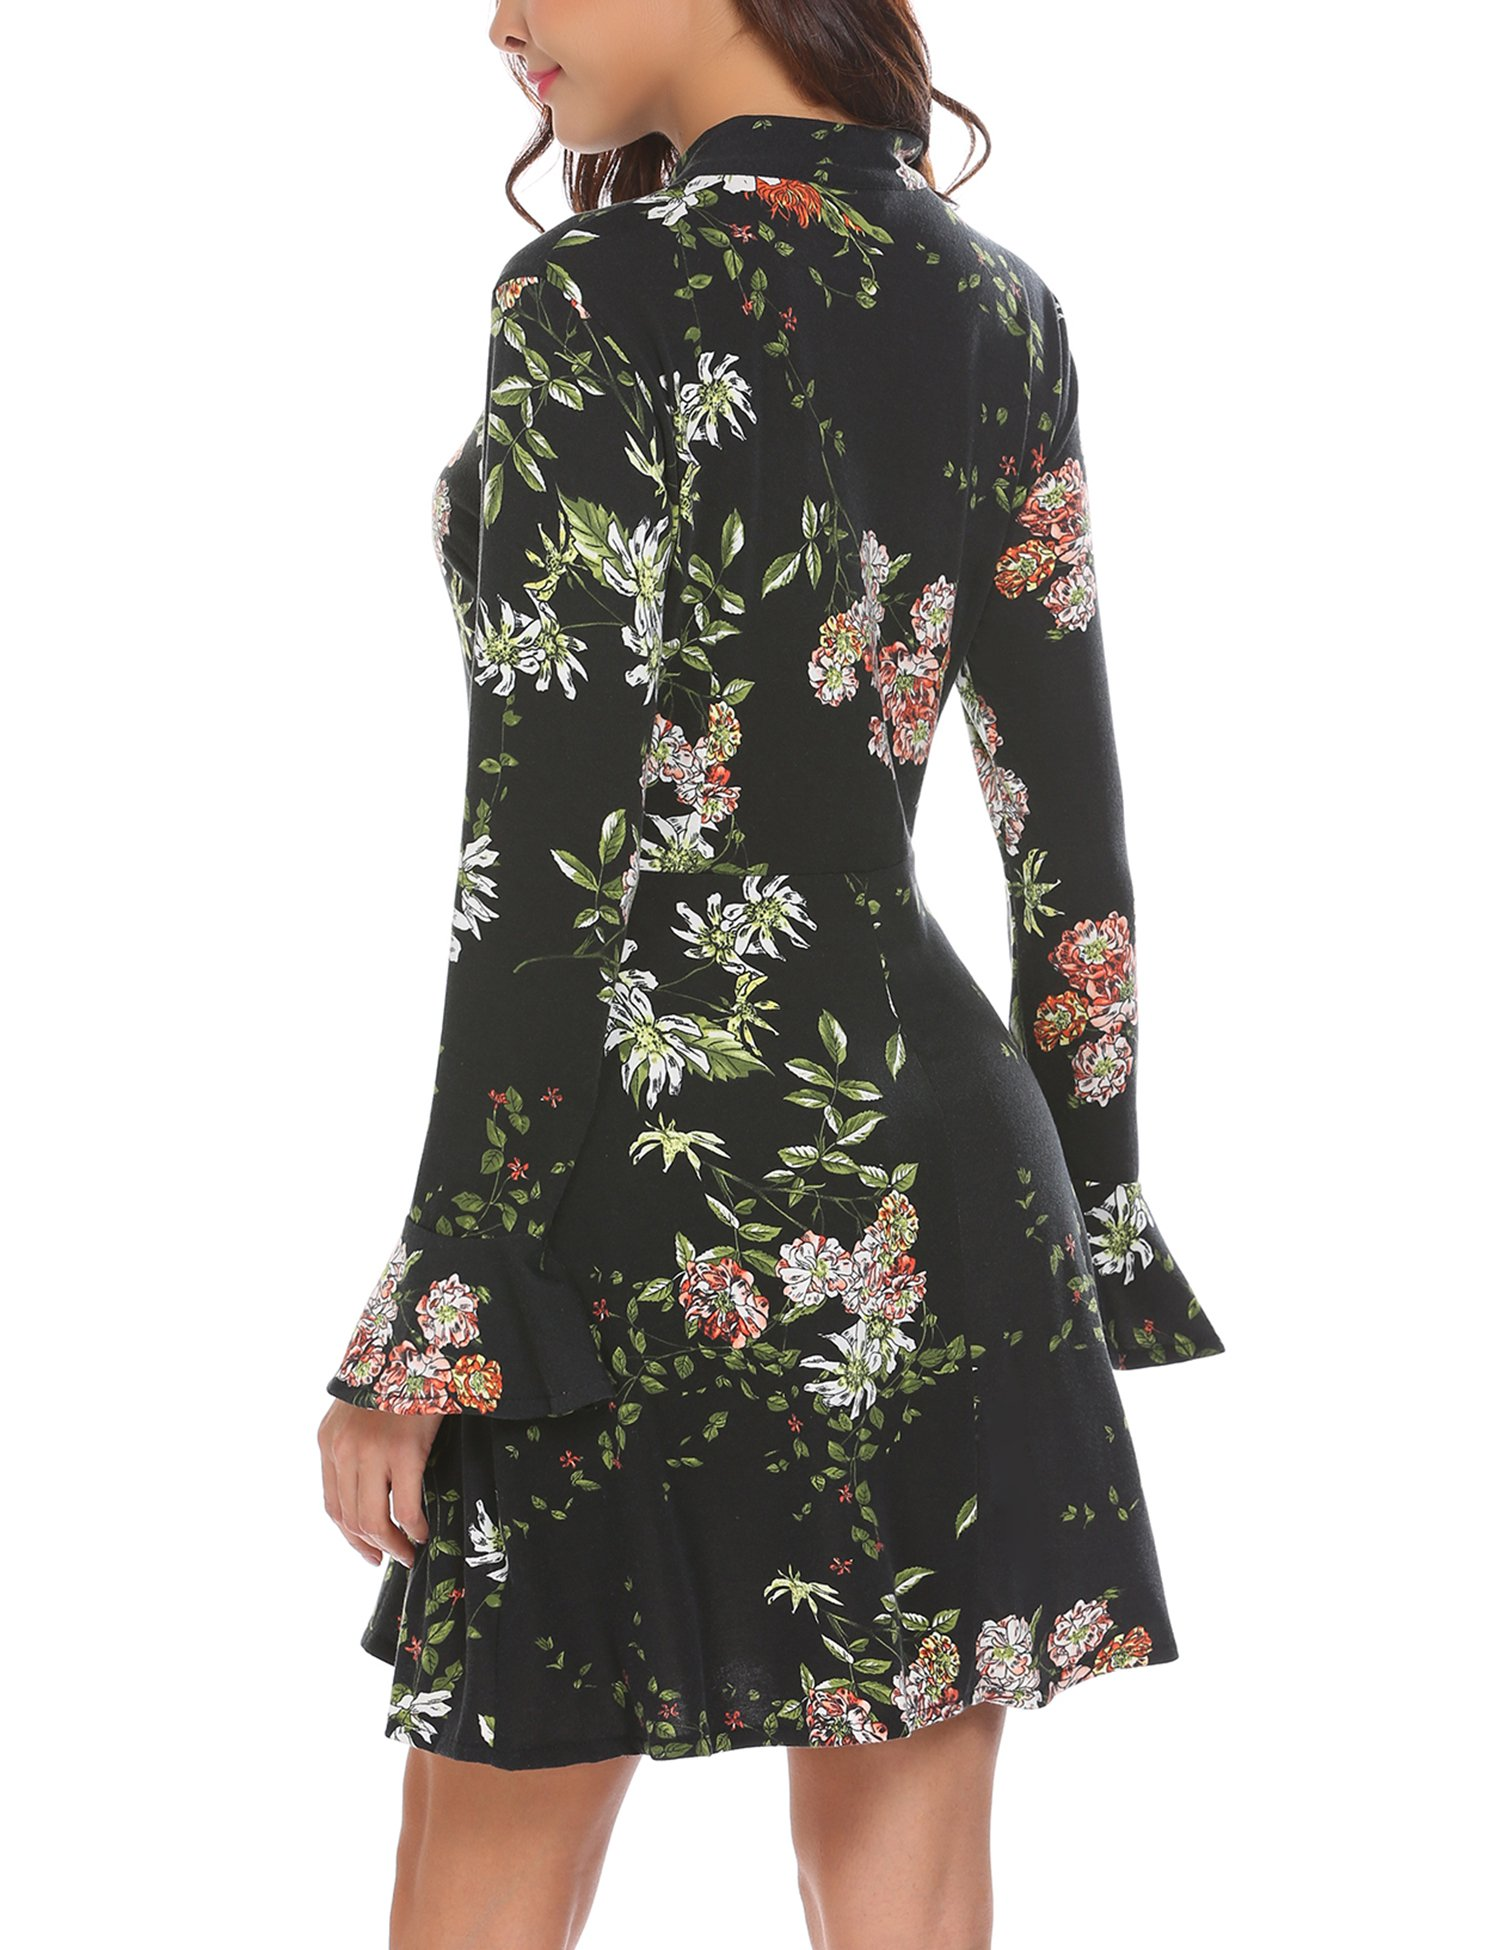 ACEVOG Women's Casual Floral Print Bell Sleeve Fit and Flare Dress (X-Large, Black) by ACEVOG (Image #5)